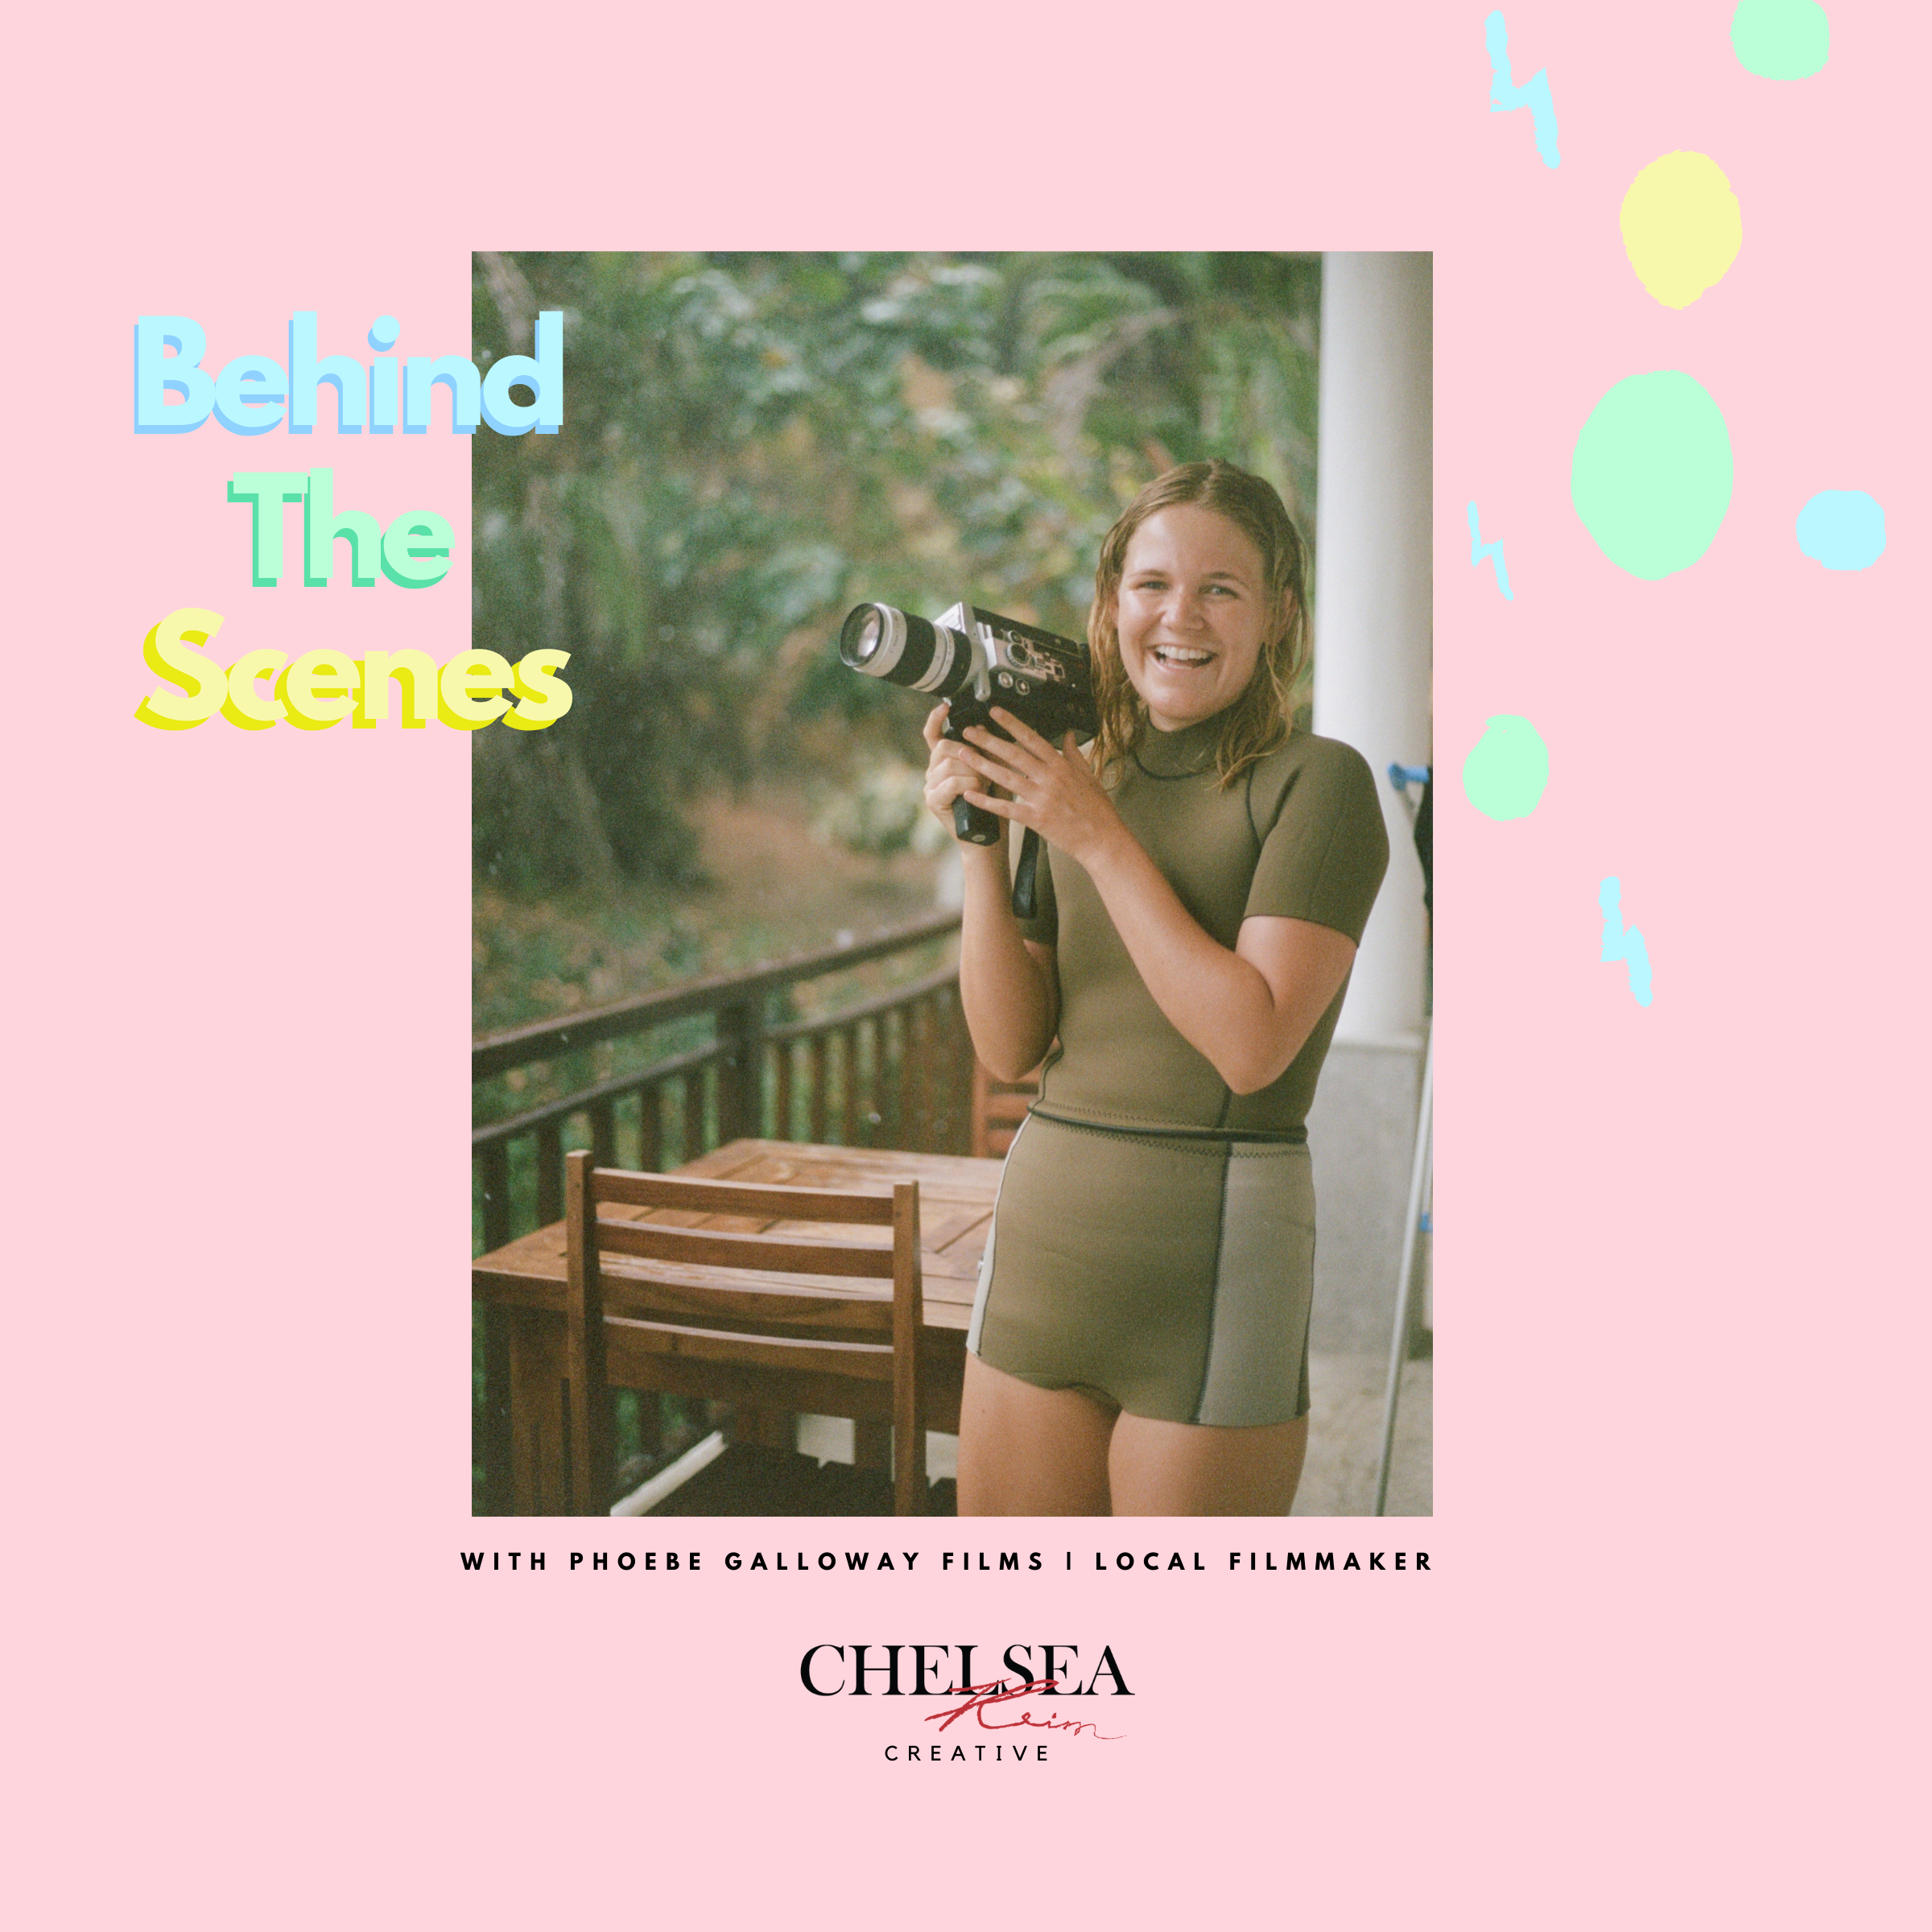 Behind The Scenes With Phoebe Galloway Films | Local Filmmaker